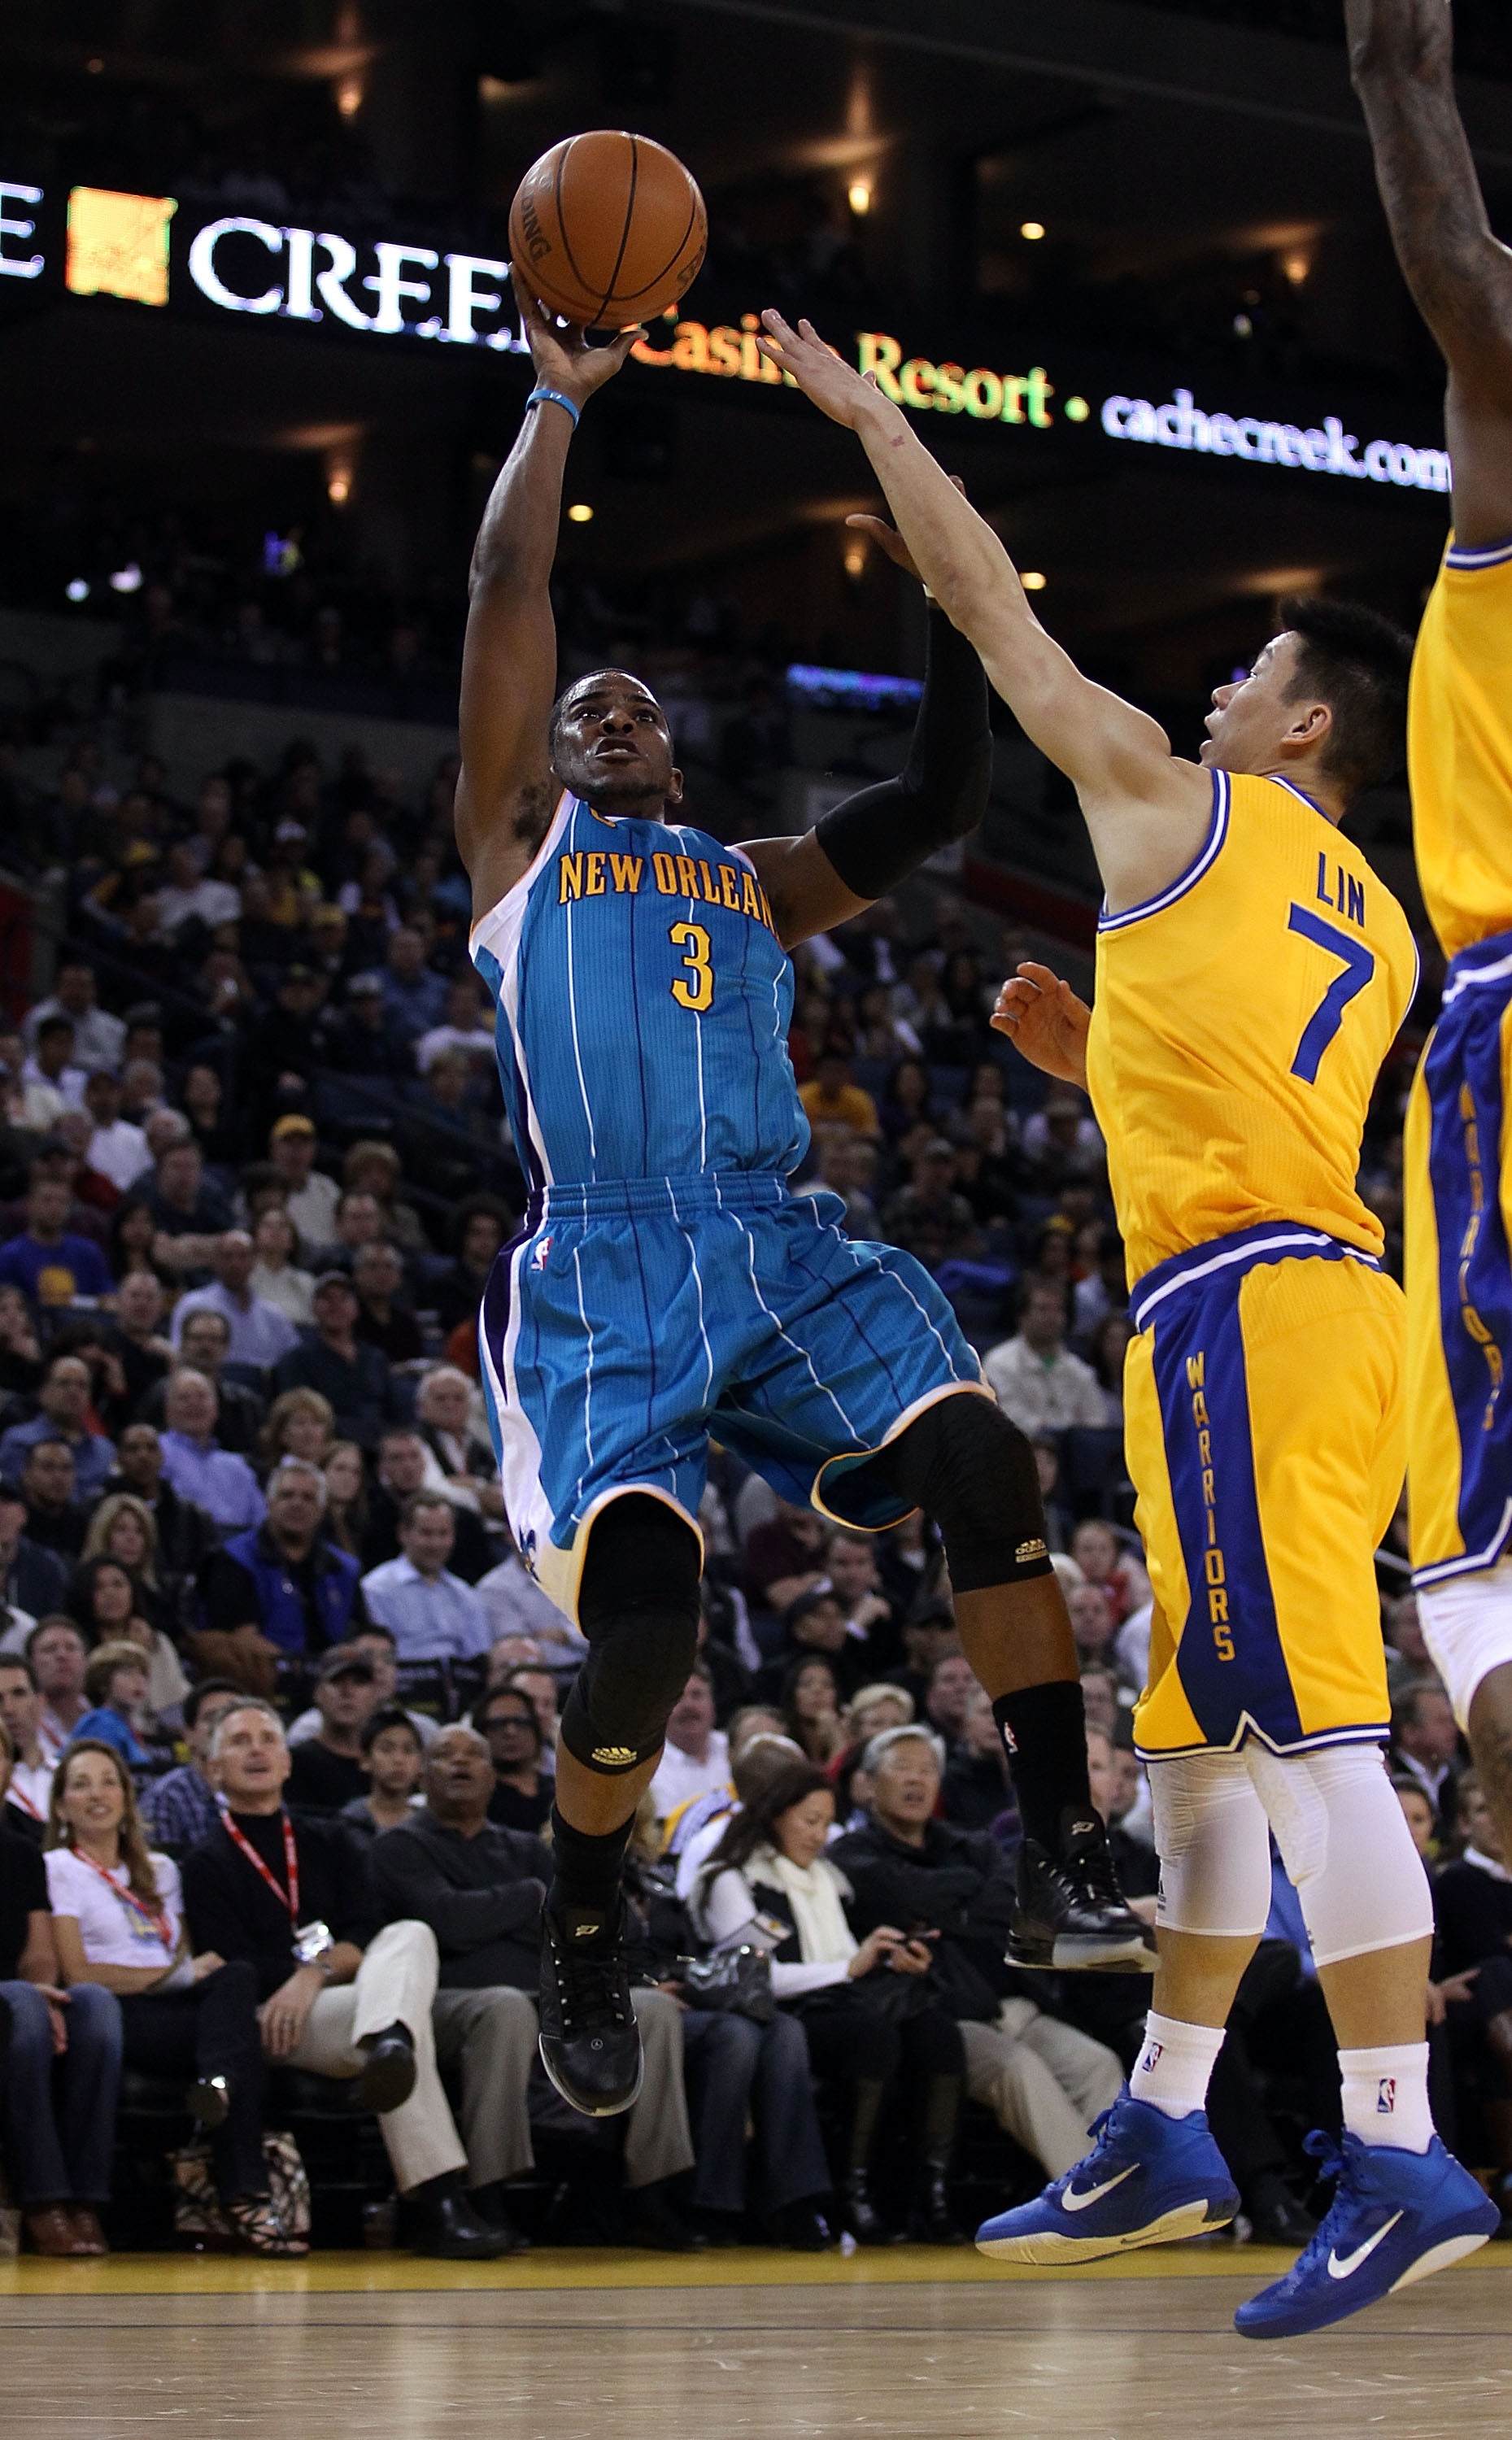 OAKLAND, CA - FEBRUARY 15:  Chris Paul #3 of the New Orleans Hornets shoots over Jeremy Lin #7 of the Golden State Warriors at Oracle Arena on February 15, 2011 in Oakland, California. NOTE TO USER: User expressly acknowledges and agrees that, by download